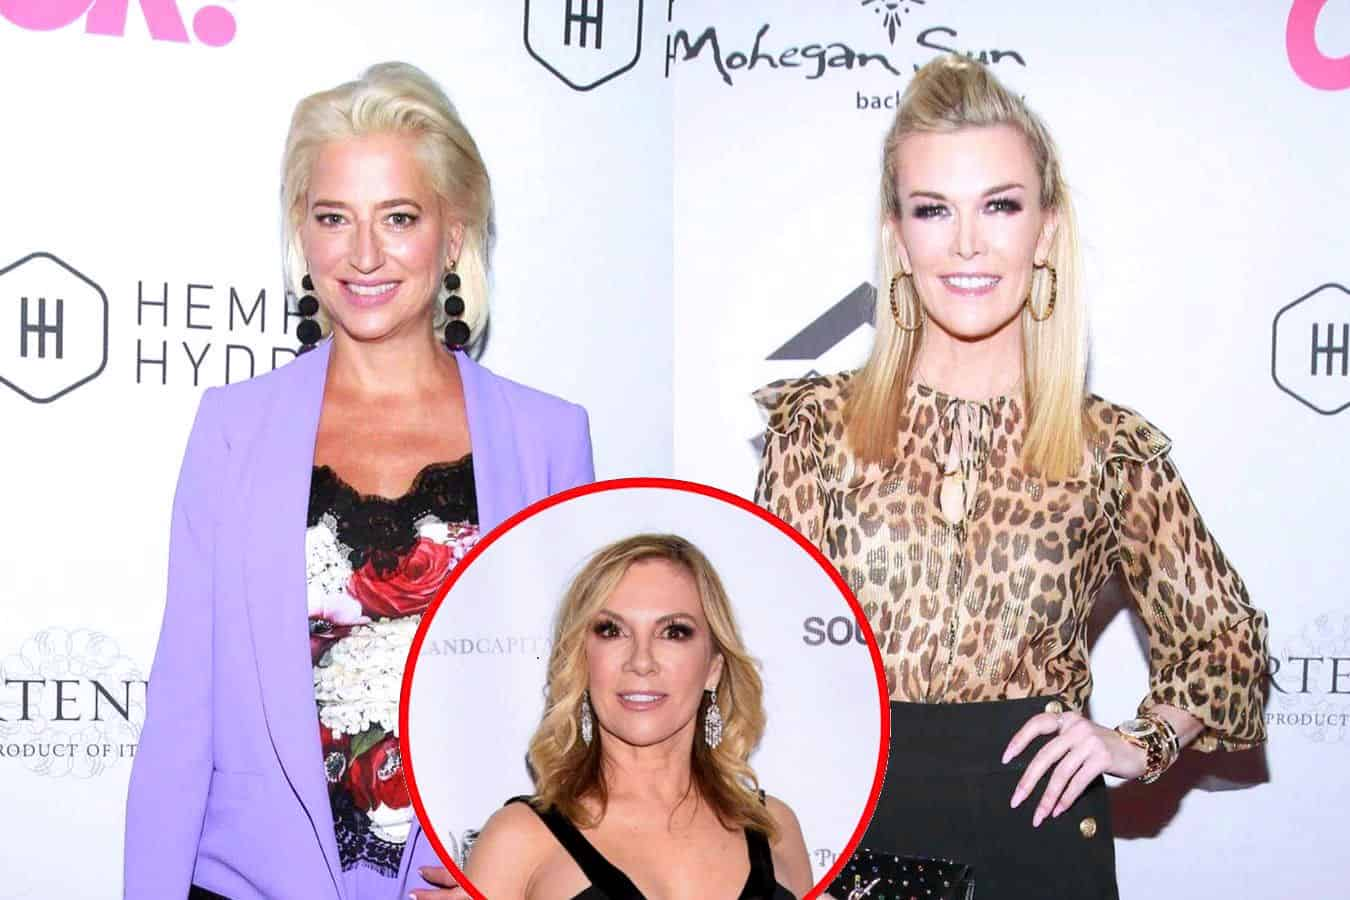 """Dorinda Medley Blasts Tinsley Mortimer as a """"Liar Liar,"""" Says She Lied About Scott For """"Whole Season"""" After RHONY Engagement Episode, Slams Ramona as an """"Opportunist"""""""